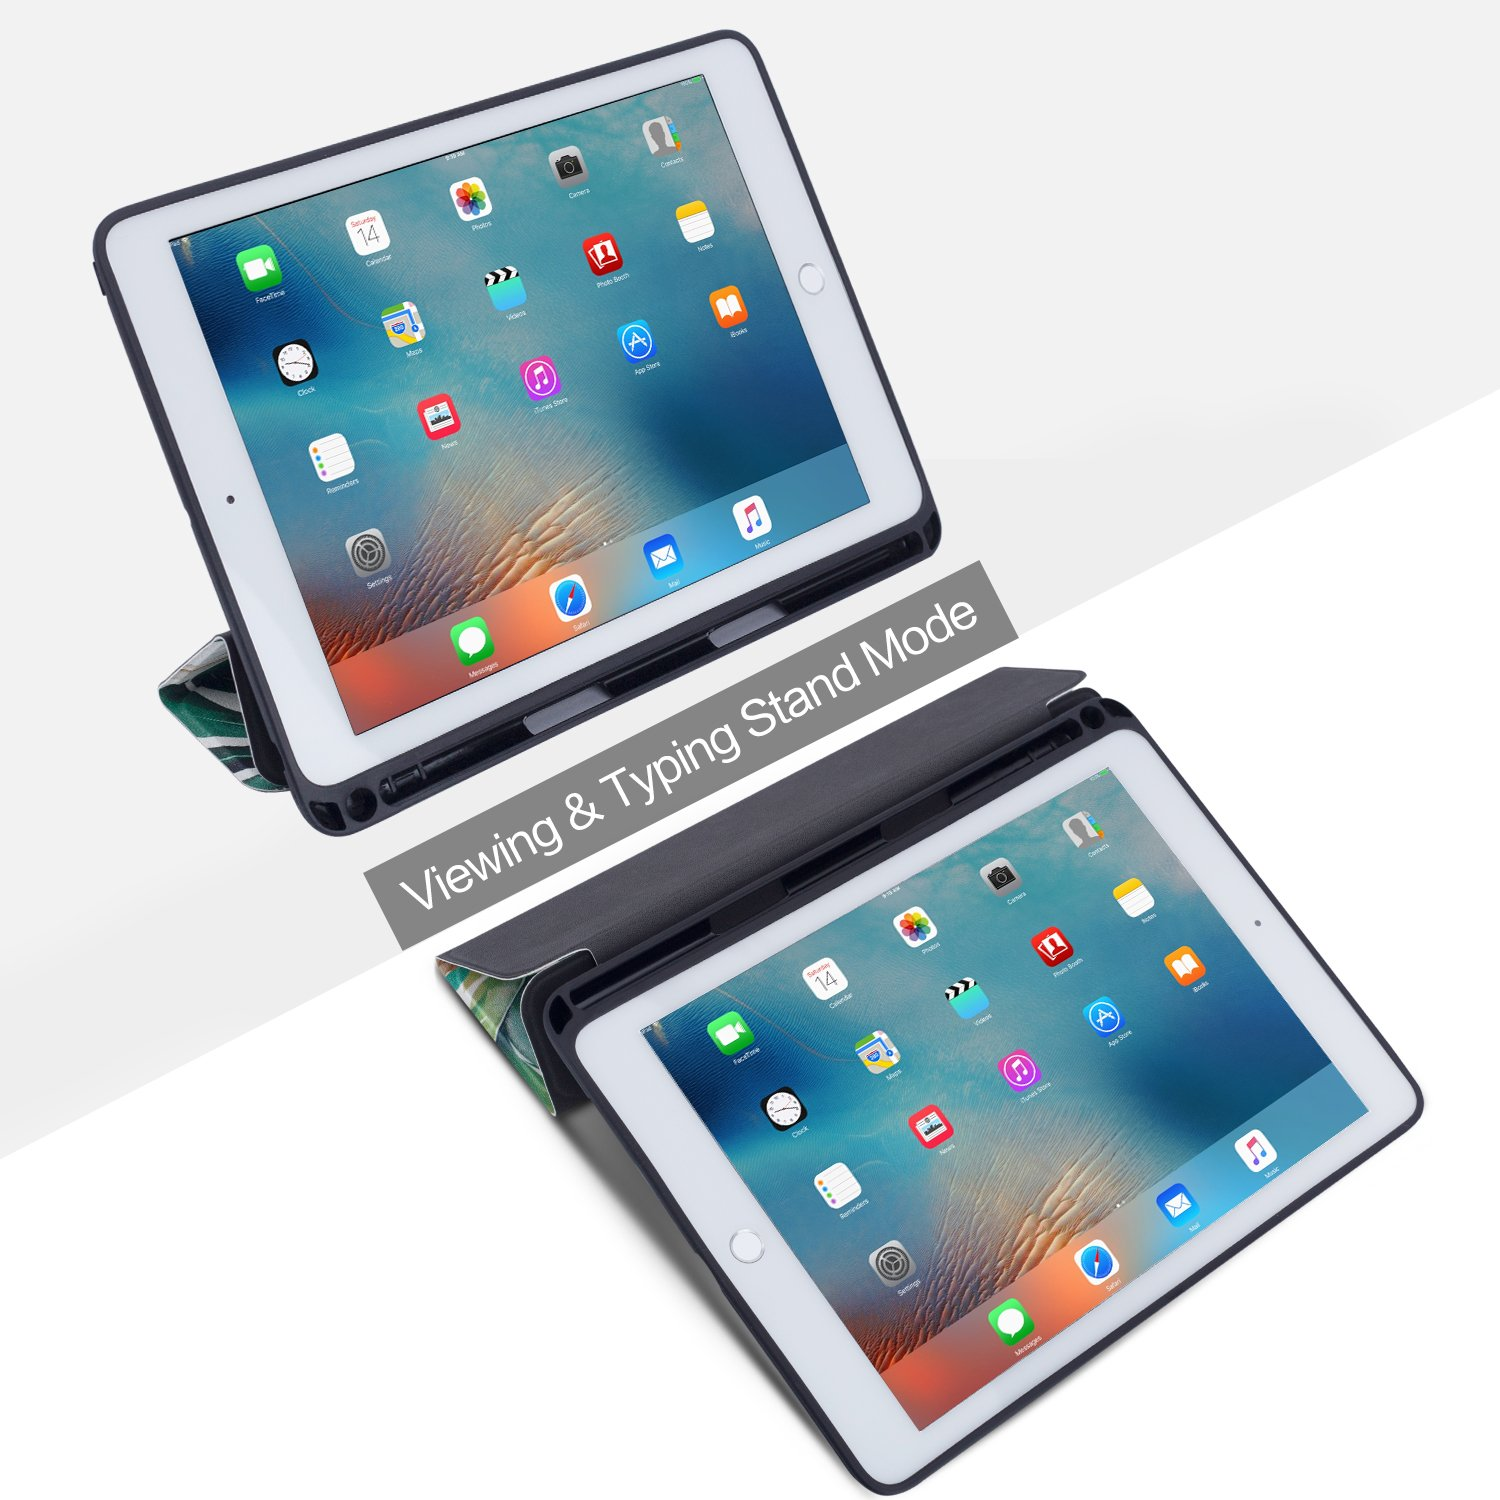 New iPad 9.7 inch 2018/2017 Case, Vimorco Premium Leather Case, Multiple Viewing Angles Stand, Tri-Fold Folio Cover for Apple ipad 9.7 2018/2017 with Auto Wake/Sleep, Pencil Holder, (White Flower)